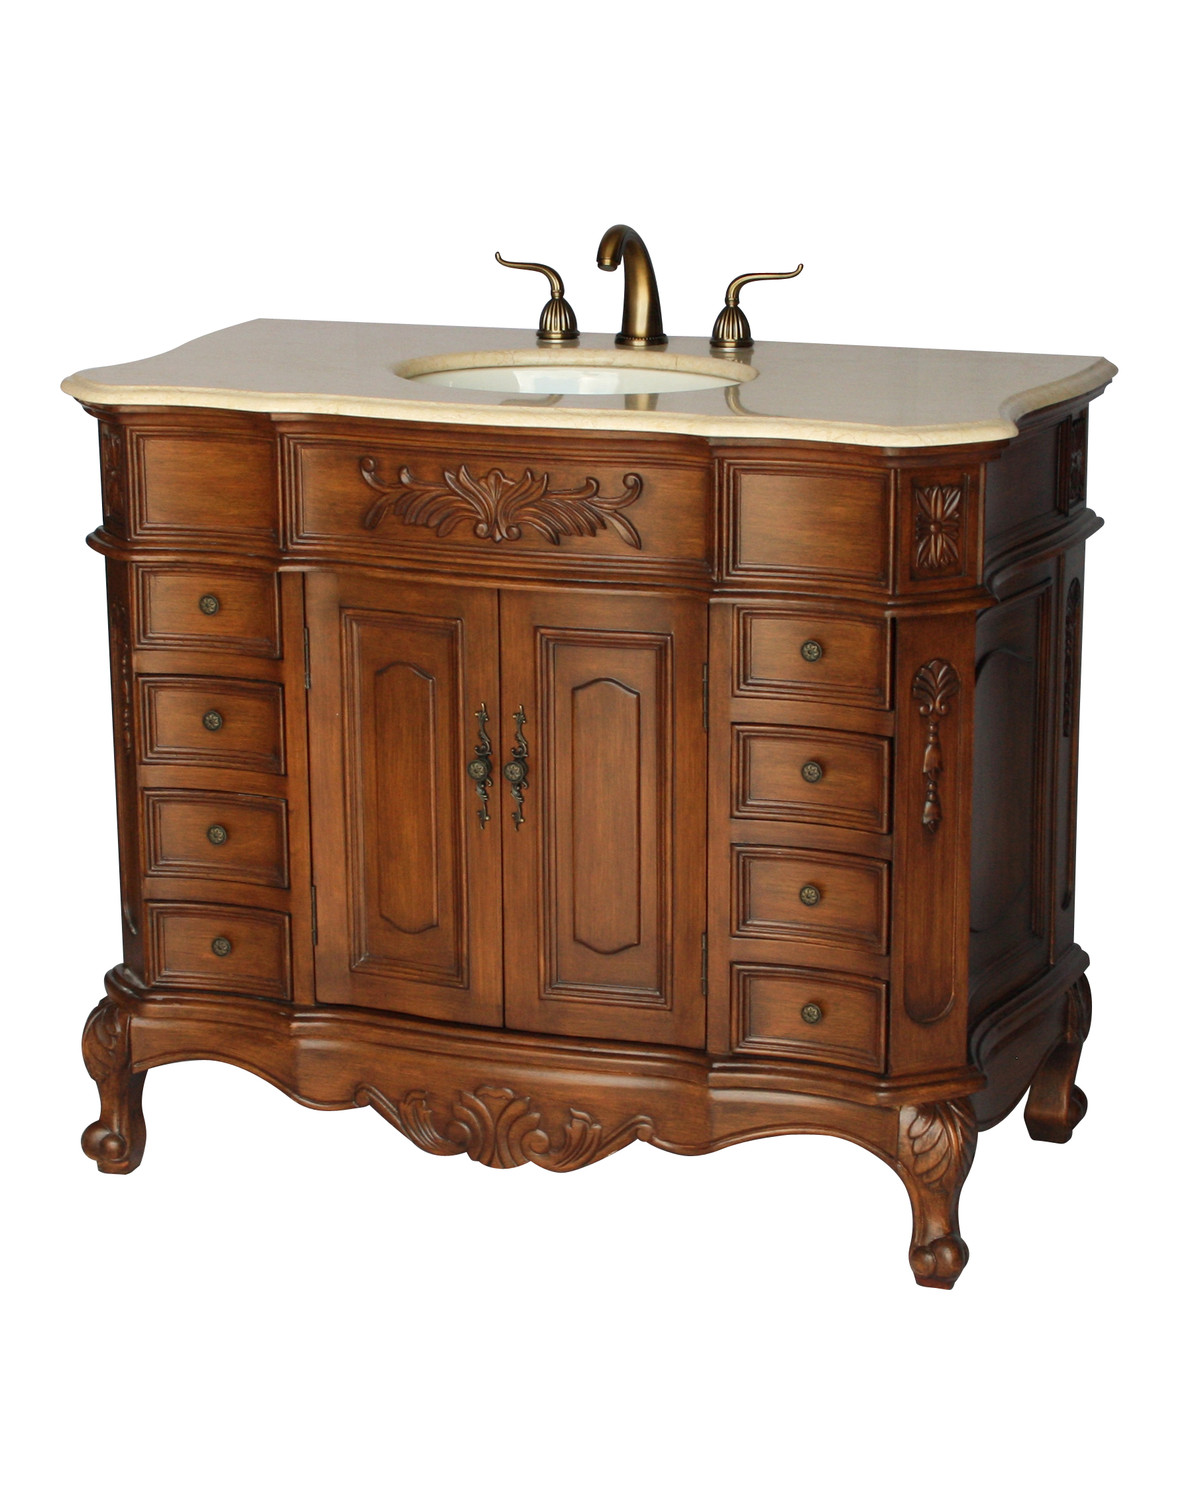 "42"" Adelina Antique Single Sink Bathroom Vanity Walnut Finish with Beige Stone Countertop"